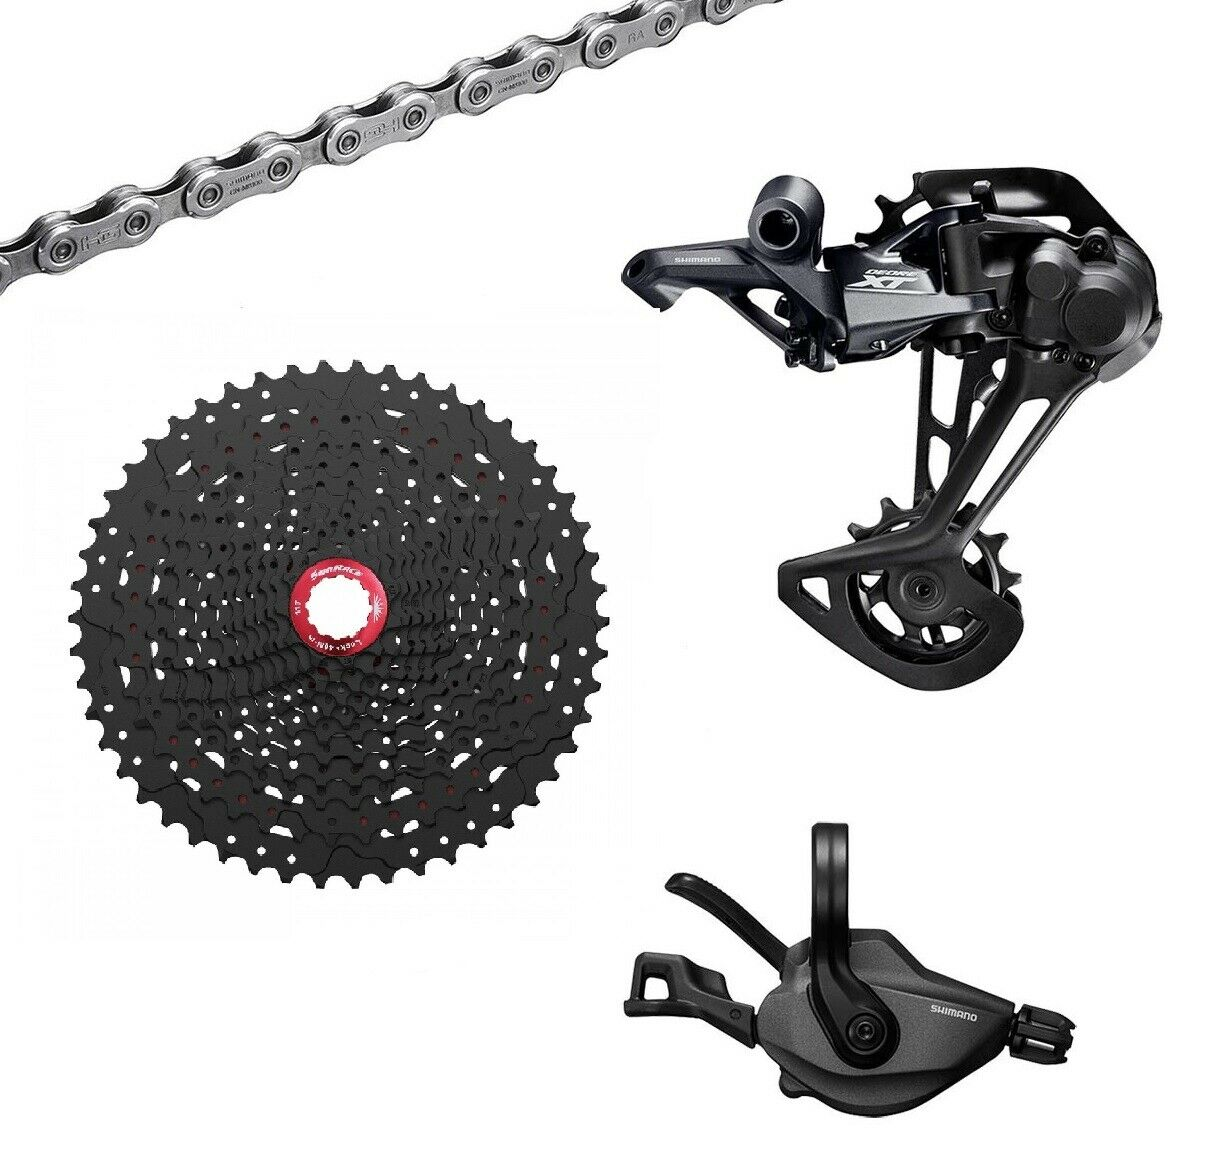 Group Upgrade Kit Shimano XT m8100 12v-Sunrace 2020   fast delivery and free shipping on all orders